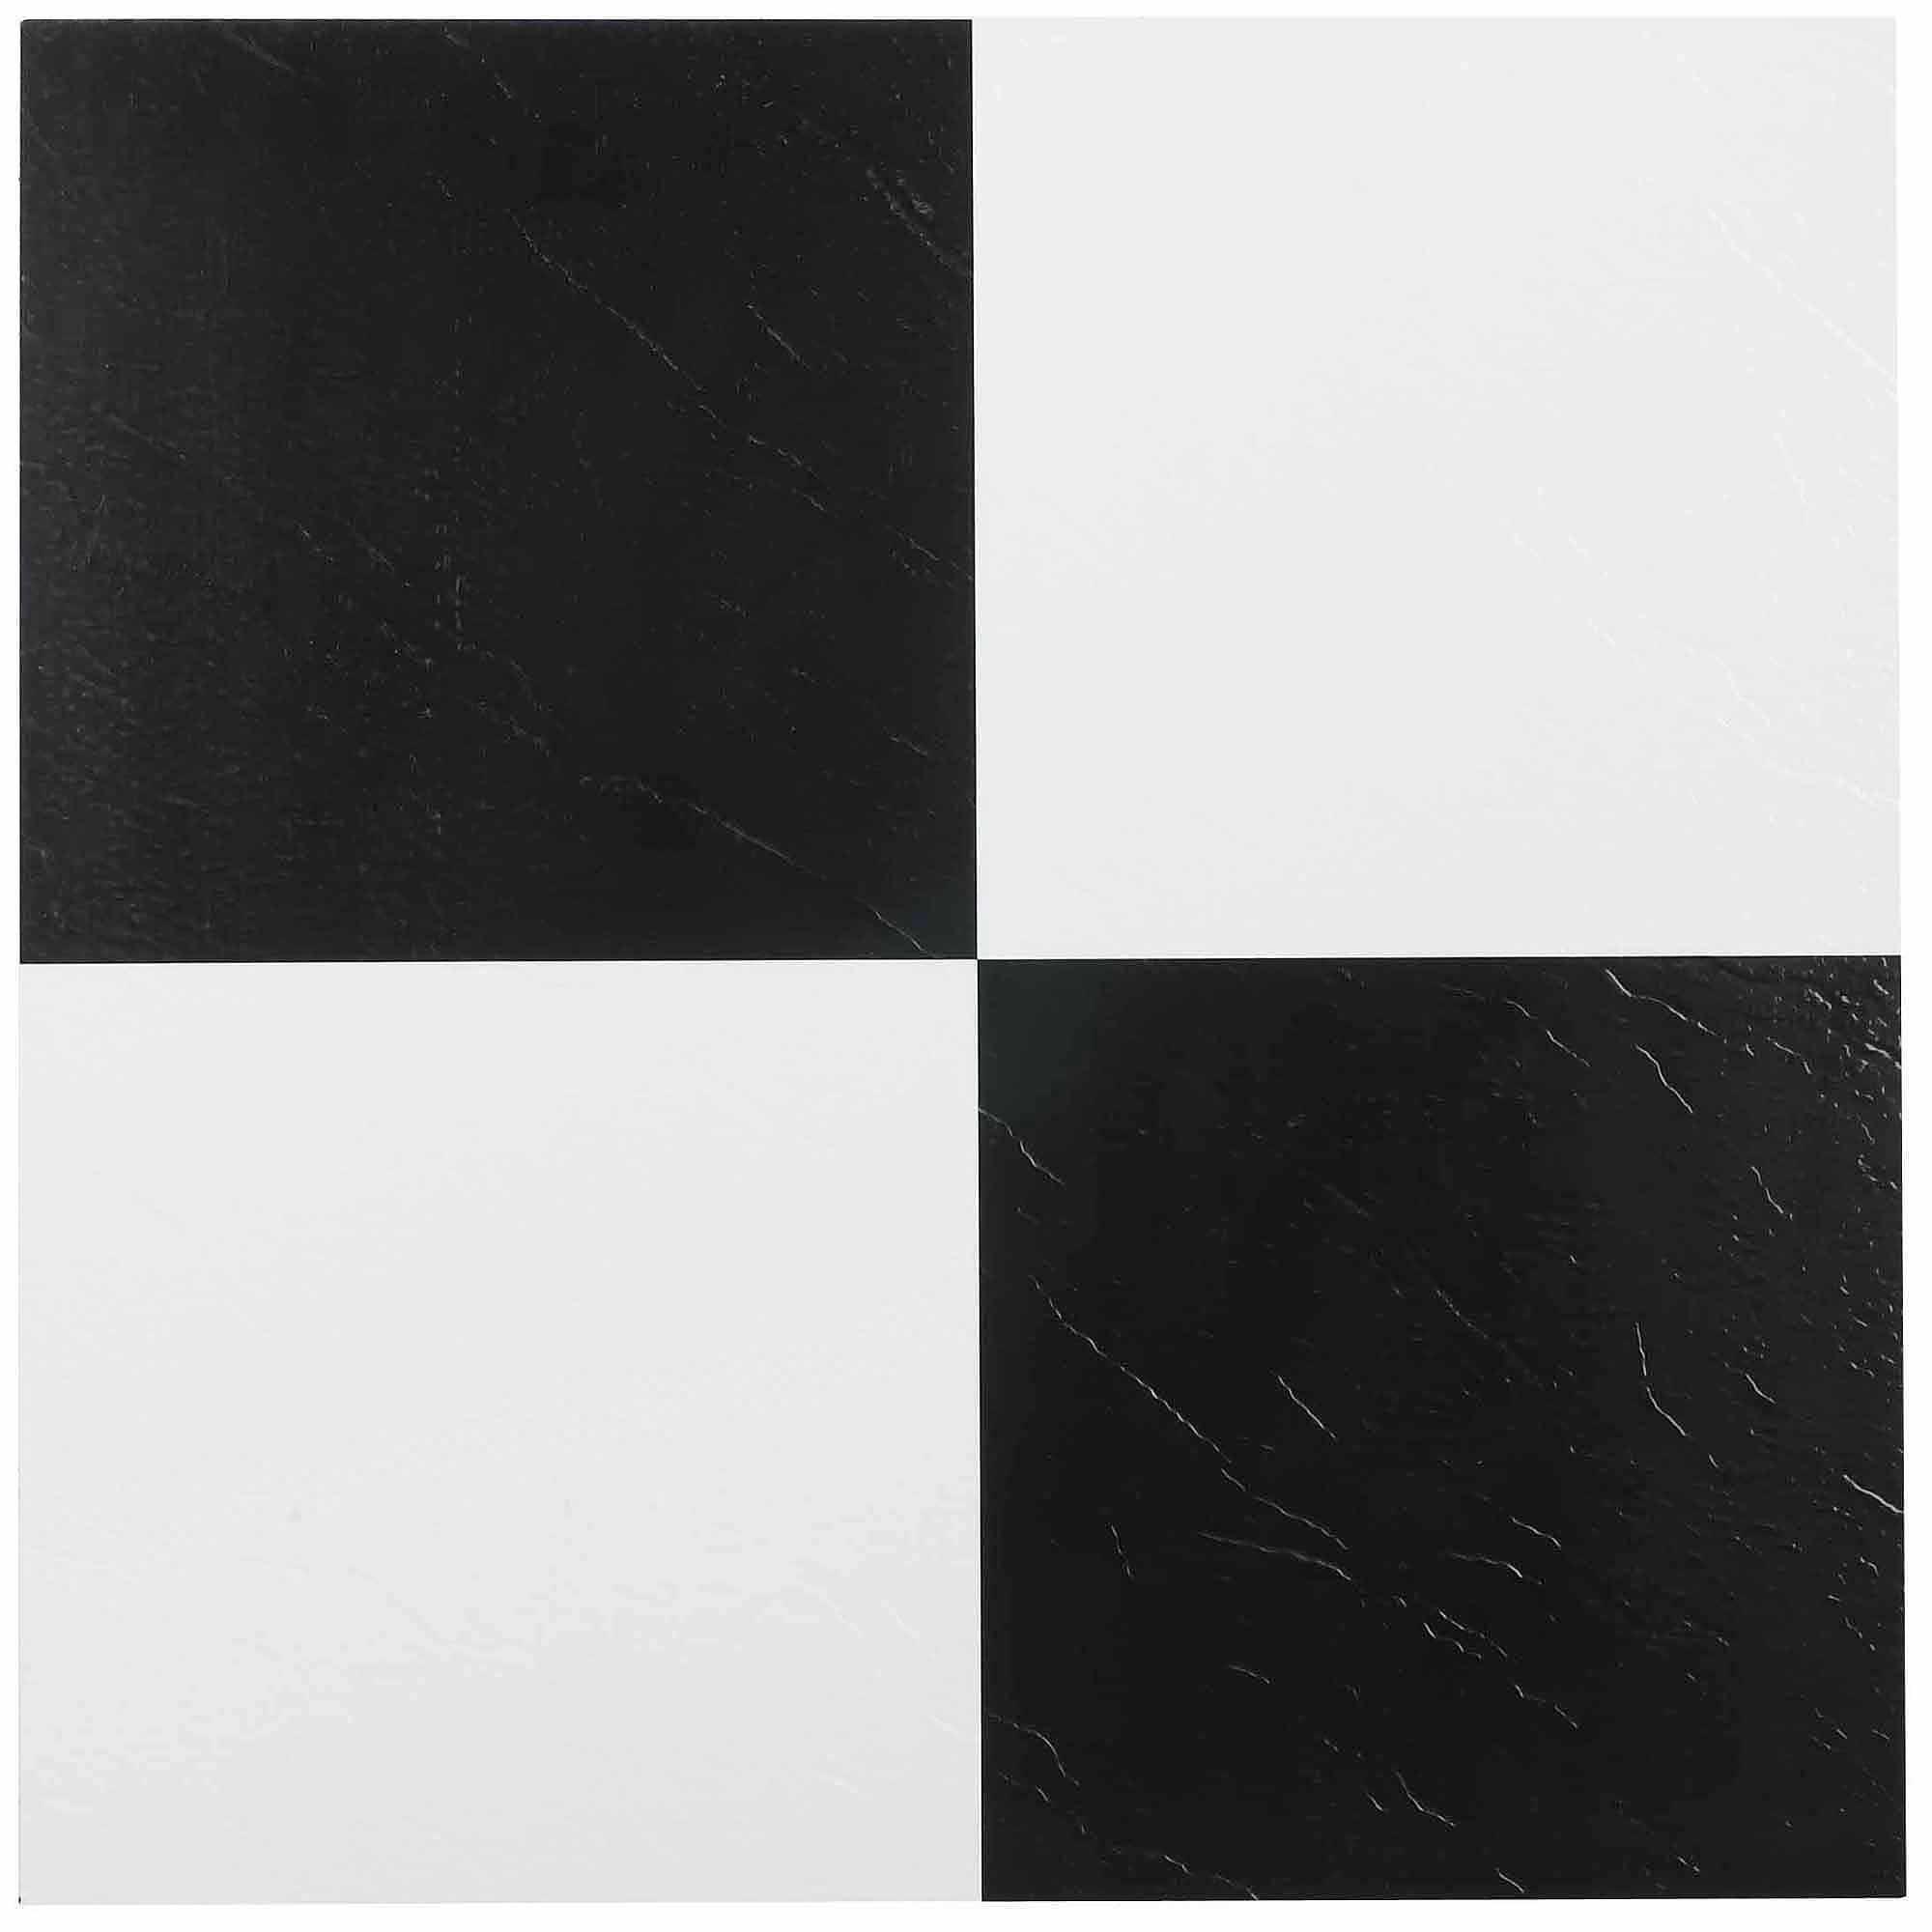 Peel And Stick Kitchen Floor Tile Nexus Black White 12x12 Self Adhesive Vinyl Floor Tile 20